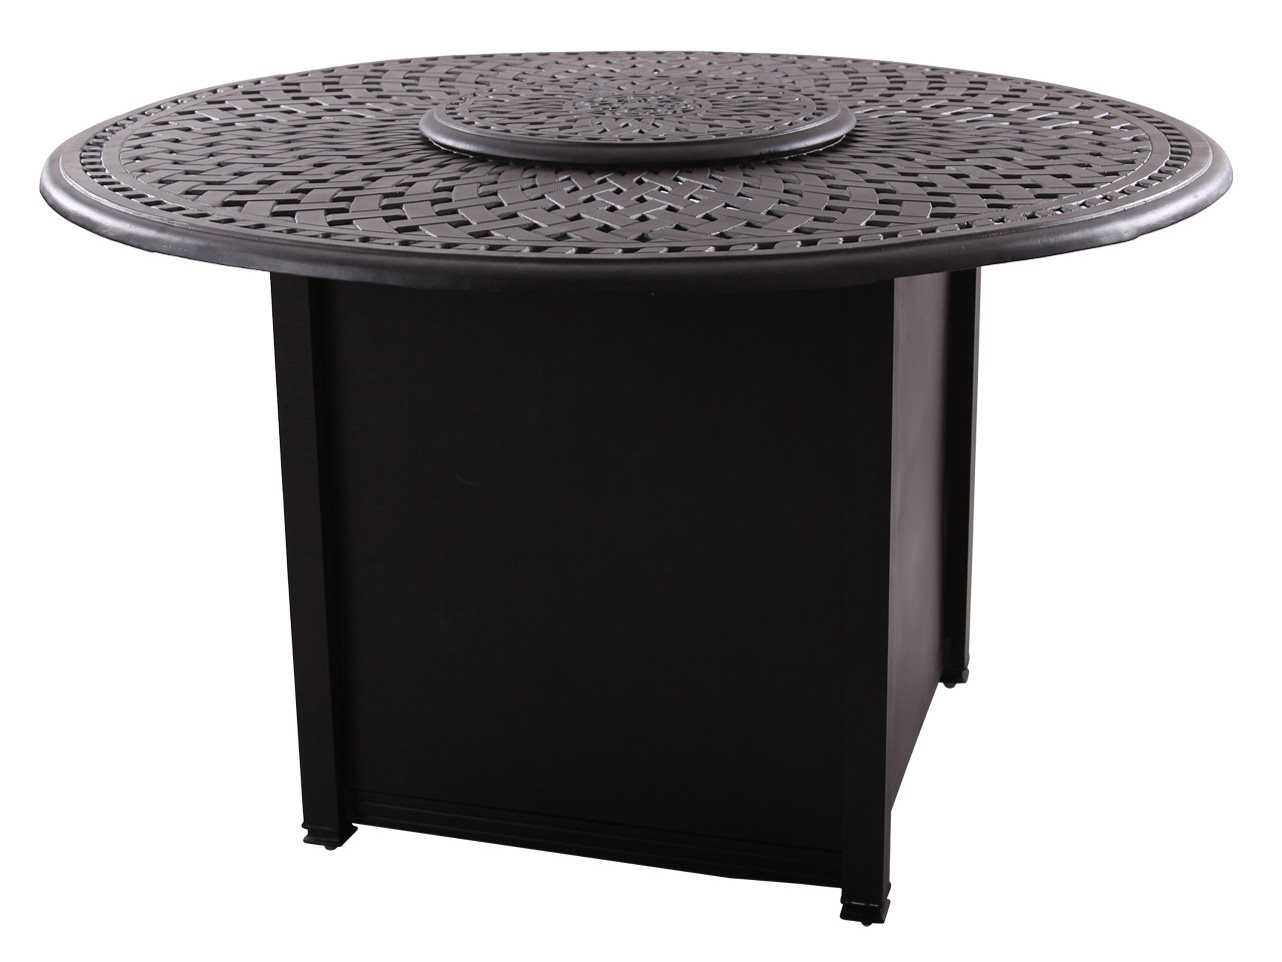 Darlee Outdoor Living Series 60 Cast Aluminum 60 Round ... on Outdoor Dining Tables With Fire Pit id=19048